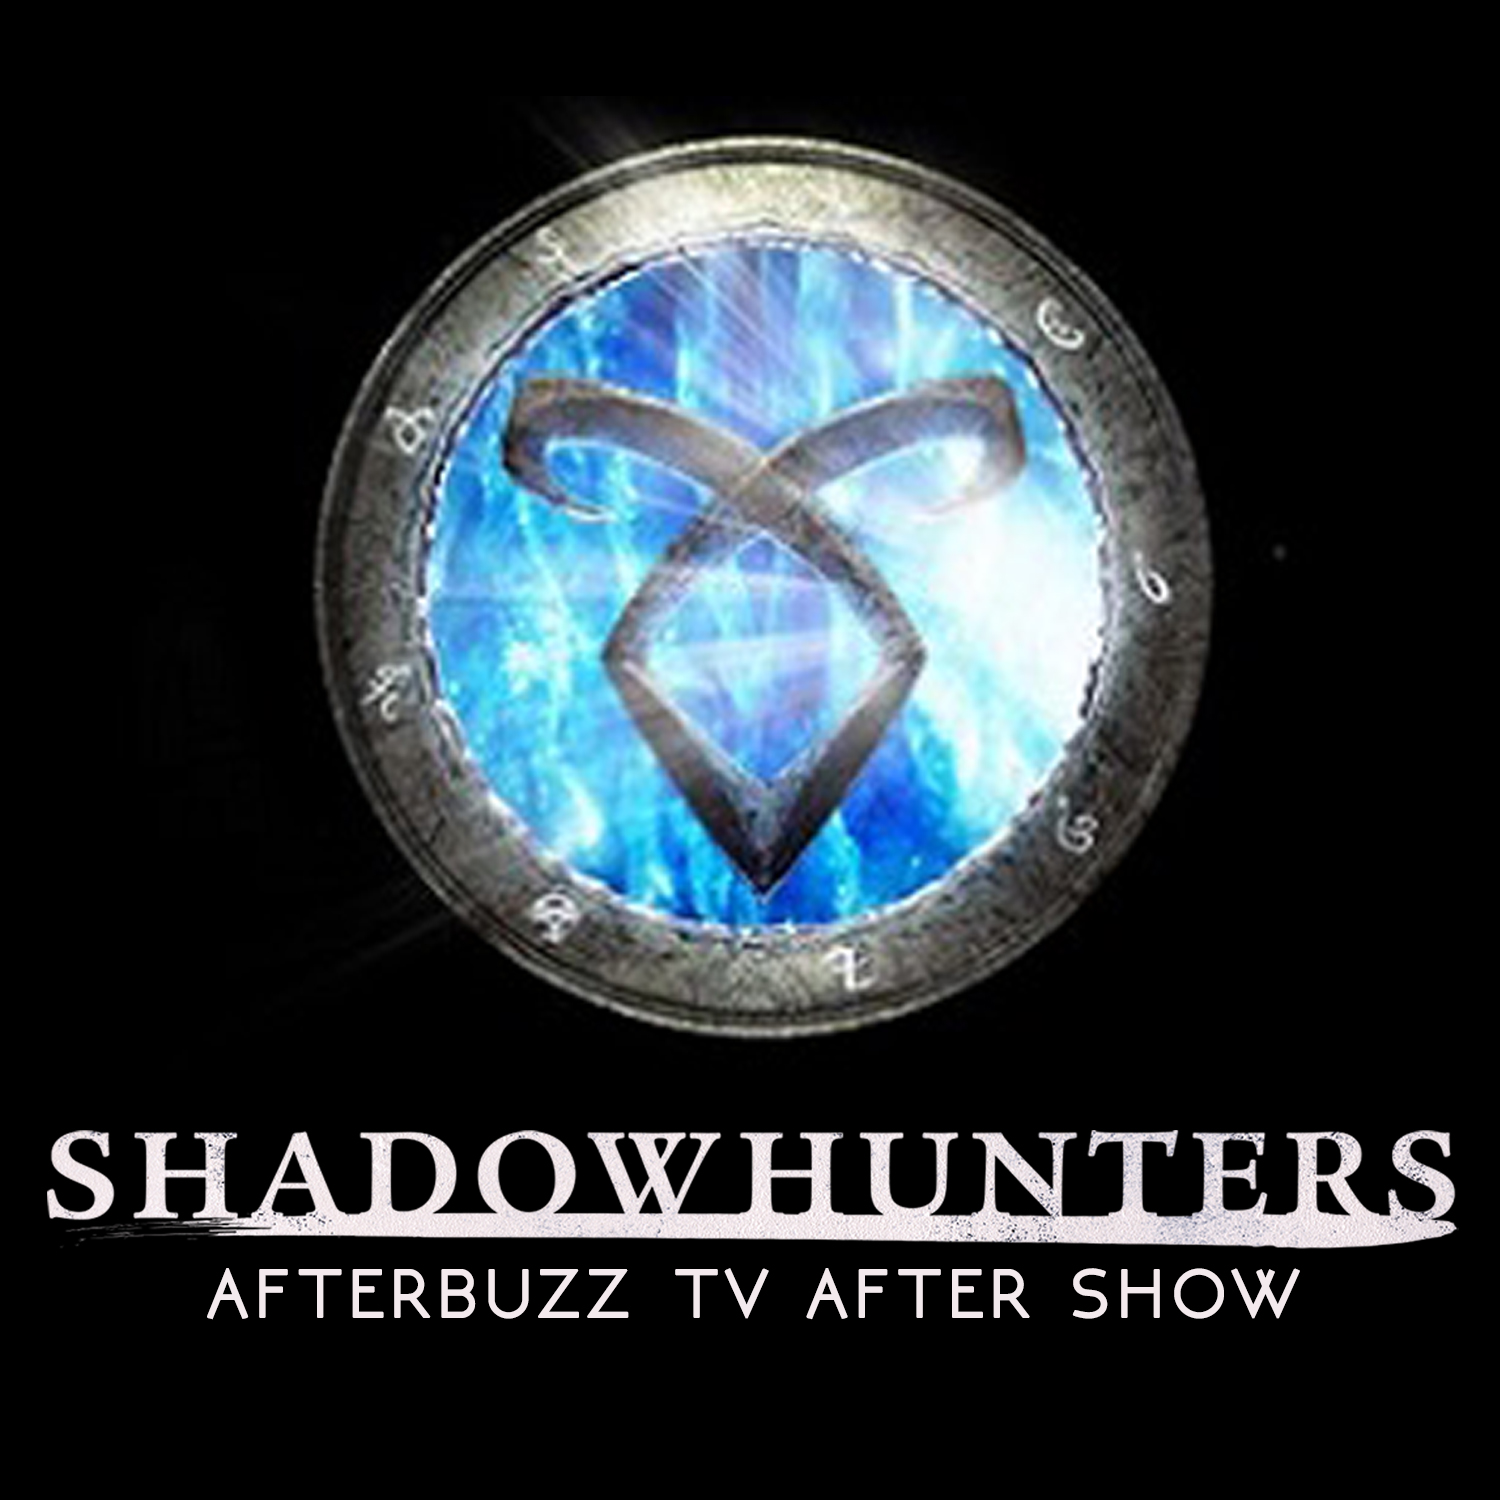 Shadowhunters After Show